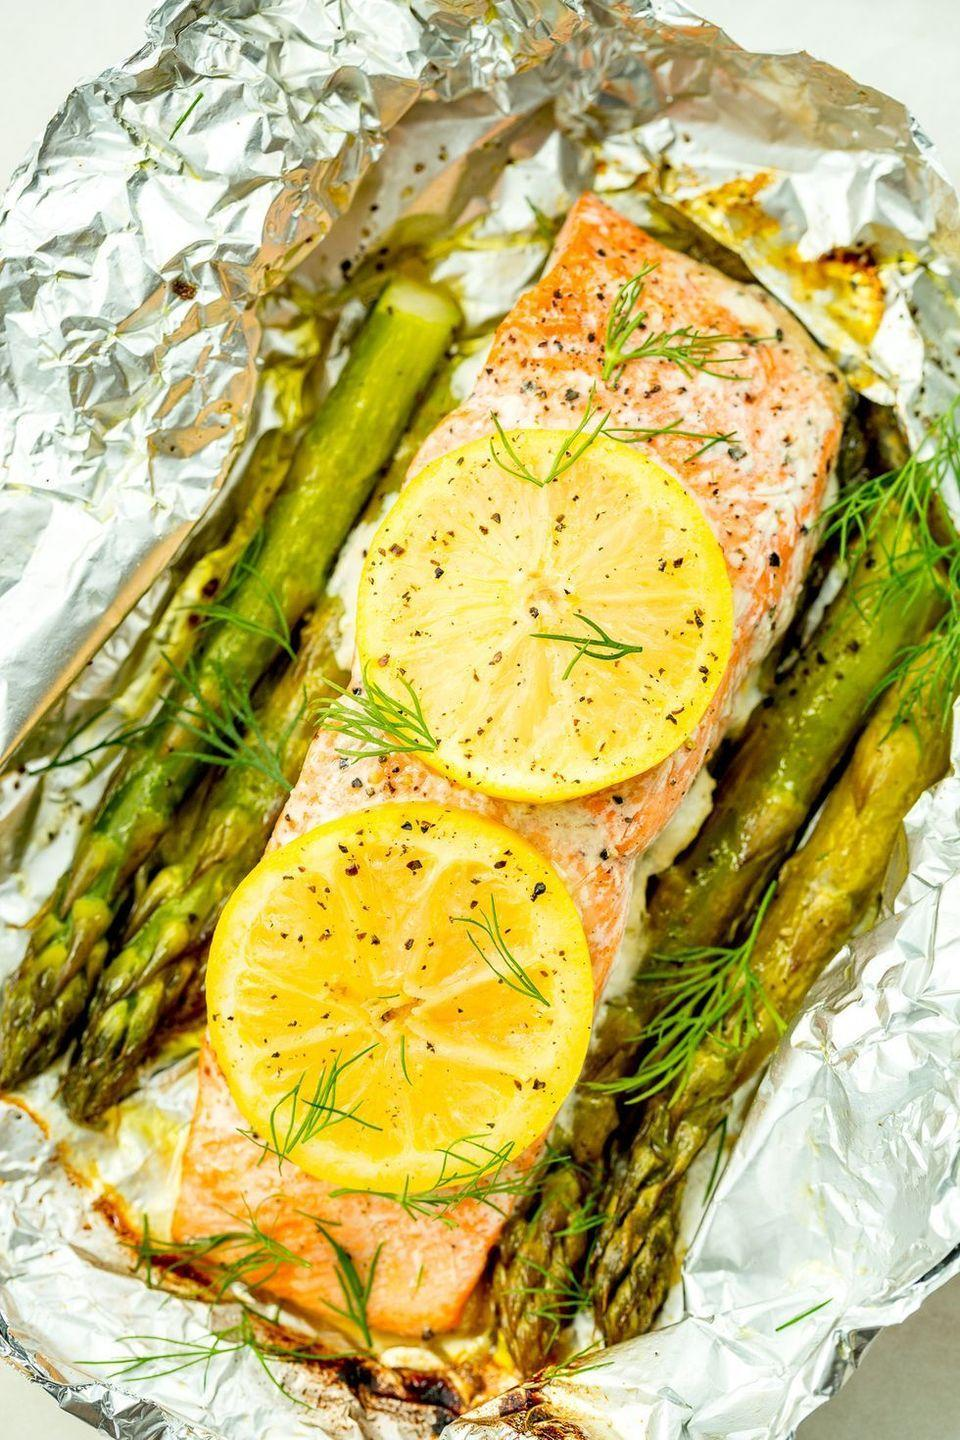 """<p>This grilled <a href=""""https://www.delish.com/uk/salmon-recipes/"""" rel=""""nofollow noopener"""" target=""""_blank"""" data-ylk=""""slk:salmon recipe"""" class=""""link rapid-noclick-resp"""">salmon recipe</a> is extremely easy and incredibly quick—the whole thing comes together in just 25 minutes.</p><p>Get the <a href=""""https://www.delish.com/uk/cooking/recipes/a29205113/foil-pack-grilled-salmon-with-lemony-asparagus-recipe/"""" rel=""""nofollow noopener"""" target=""""_blank"""" data-ylk=""""slk:Foil Pack Grilled Salmon with Lemony Asparagus"""" class=""""link rapid-noclick-resp"""">Foil Pack Grilled Salmon with Lemony Asparagus</a> recipe.</p>"""